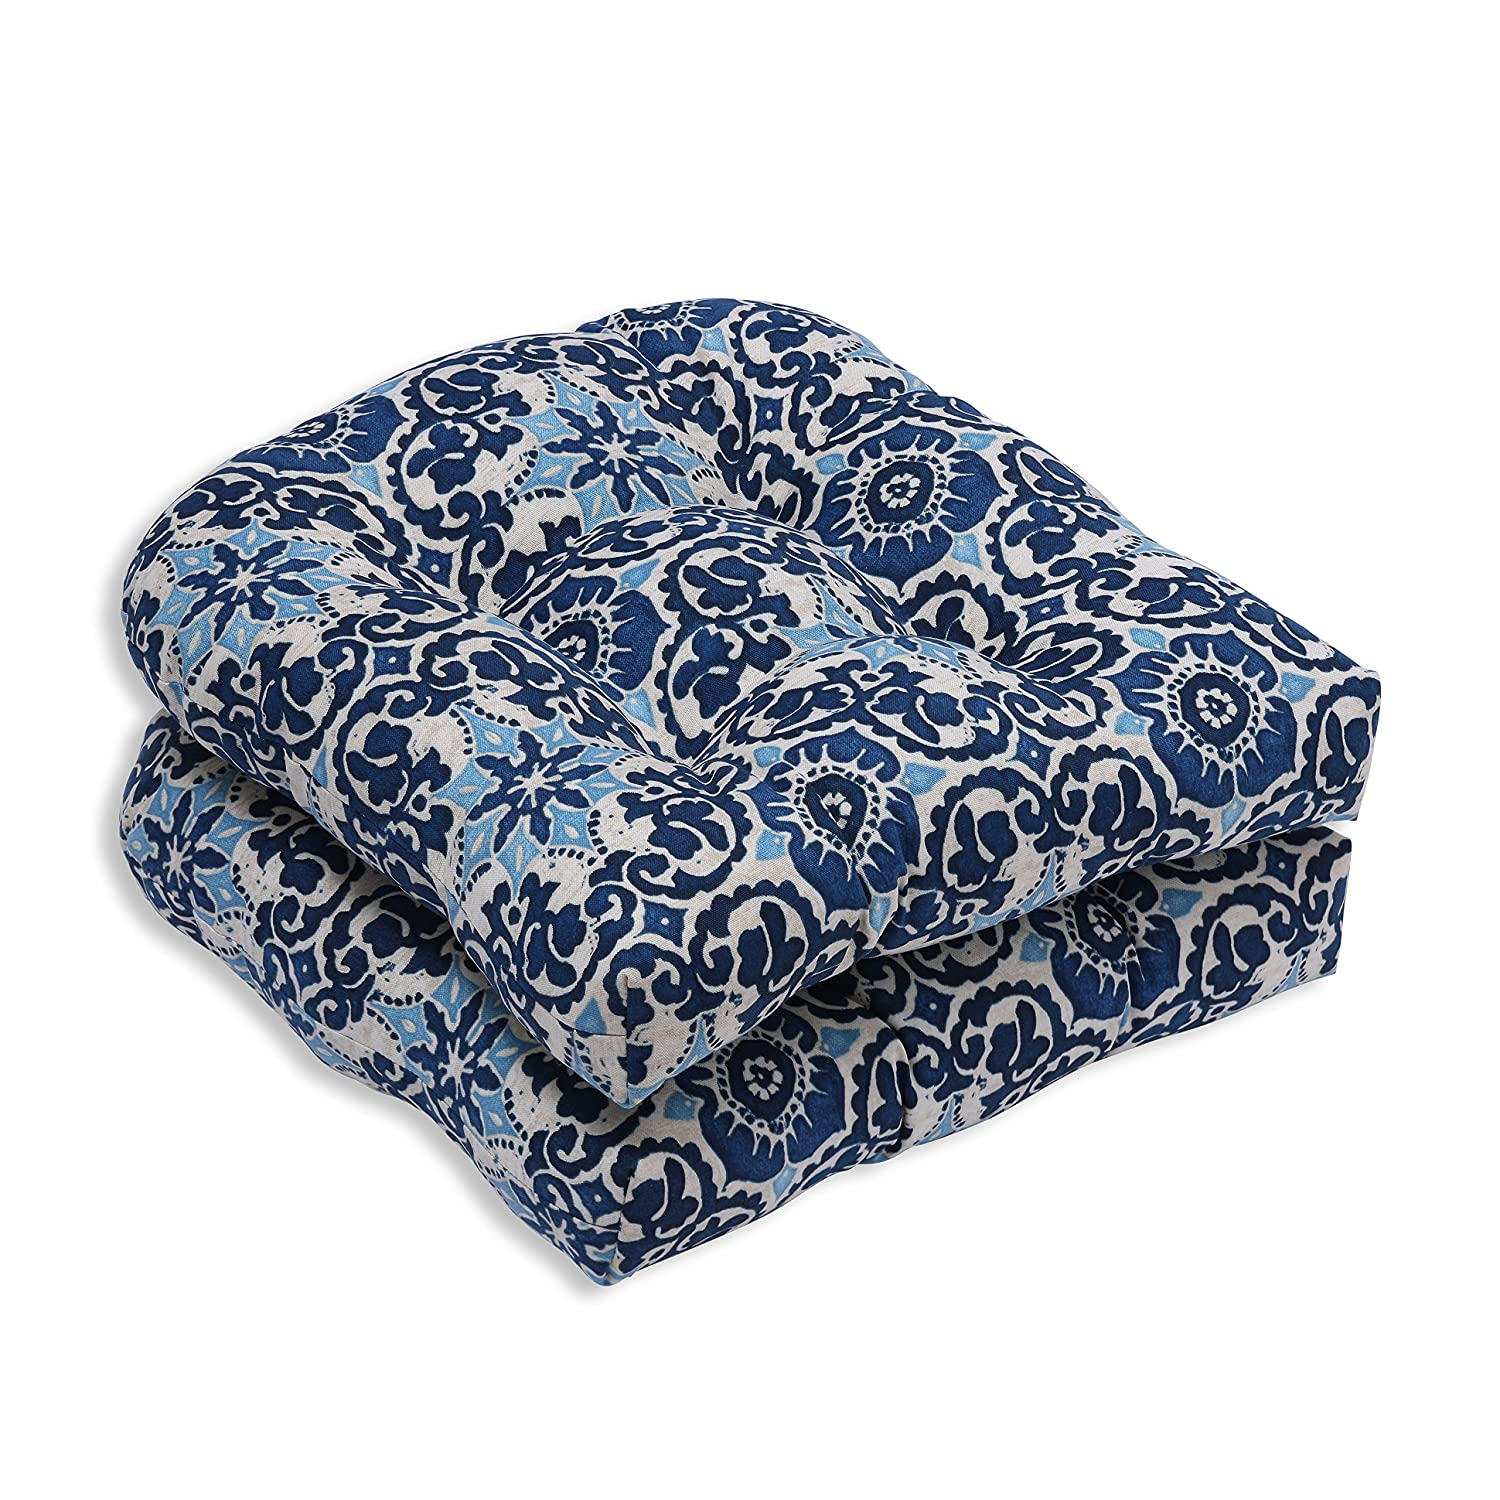 Pillow Perfect Outdoor Indoor Woodblock Prism Wicker Seat Cushion Set of 2 , Blue